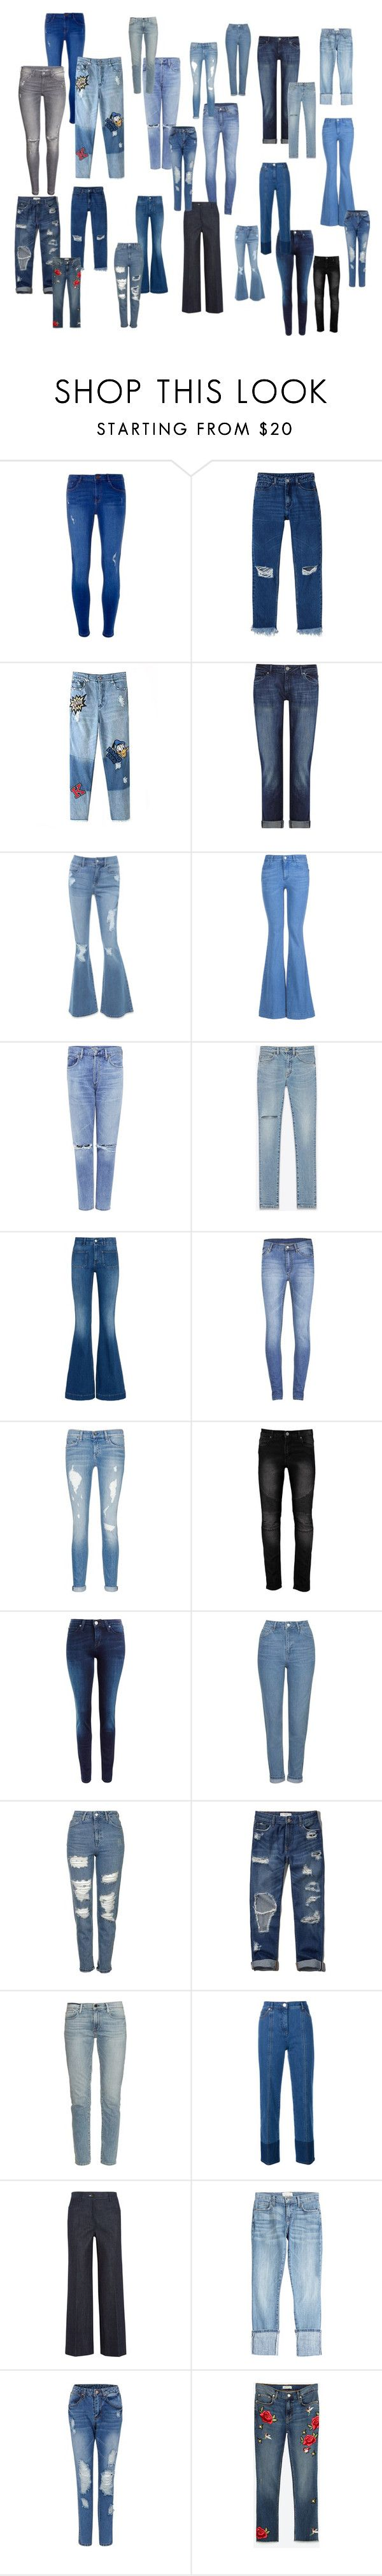 """Wybierz jeansy idealne!"" by marta-waluk on Polyvore featuring moda, Dorothy Perkins, Monki, DL1961 Premium Denim, Bebe, STELLA McCARTNEY, Citizens of Humanity, Yves Saint Laurent, Cheap Monday i rag & bone/JEAN"